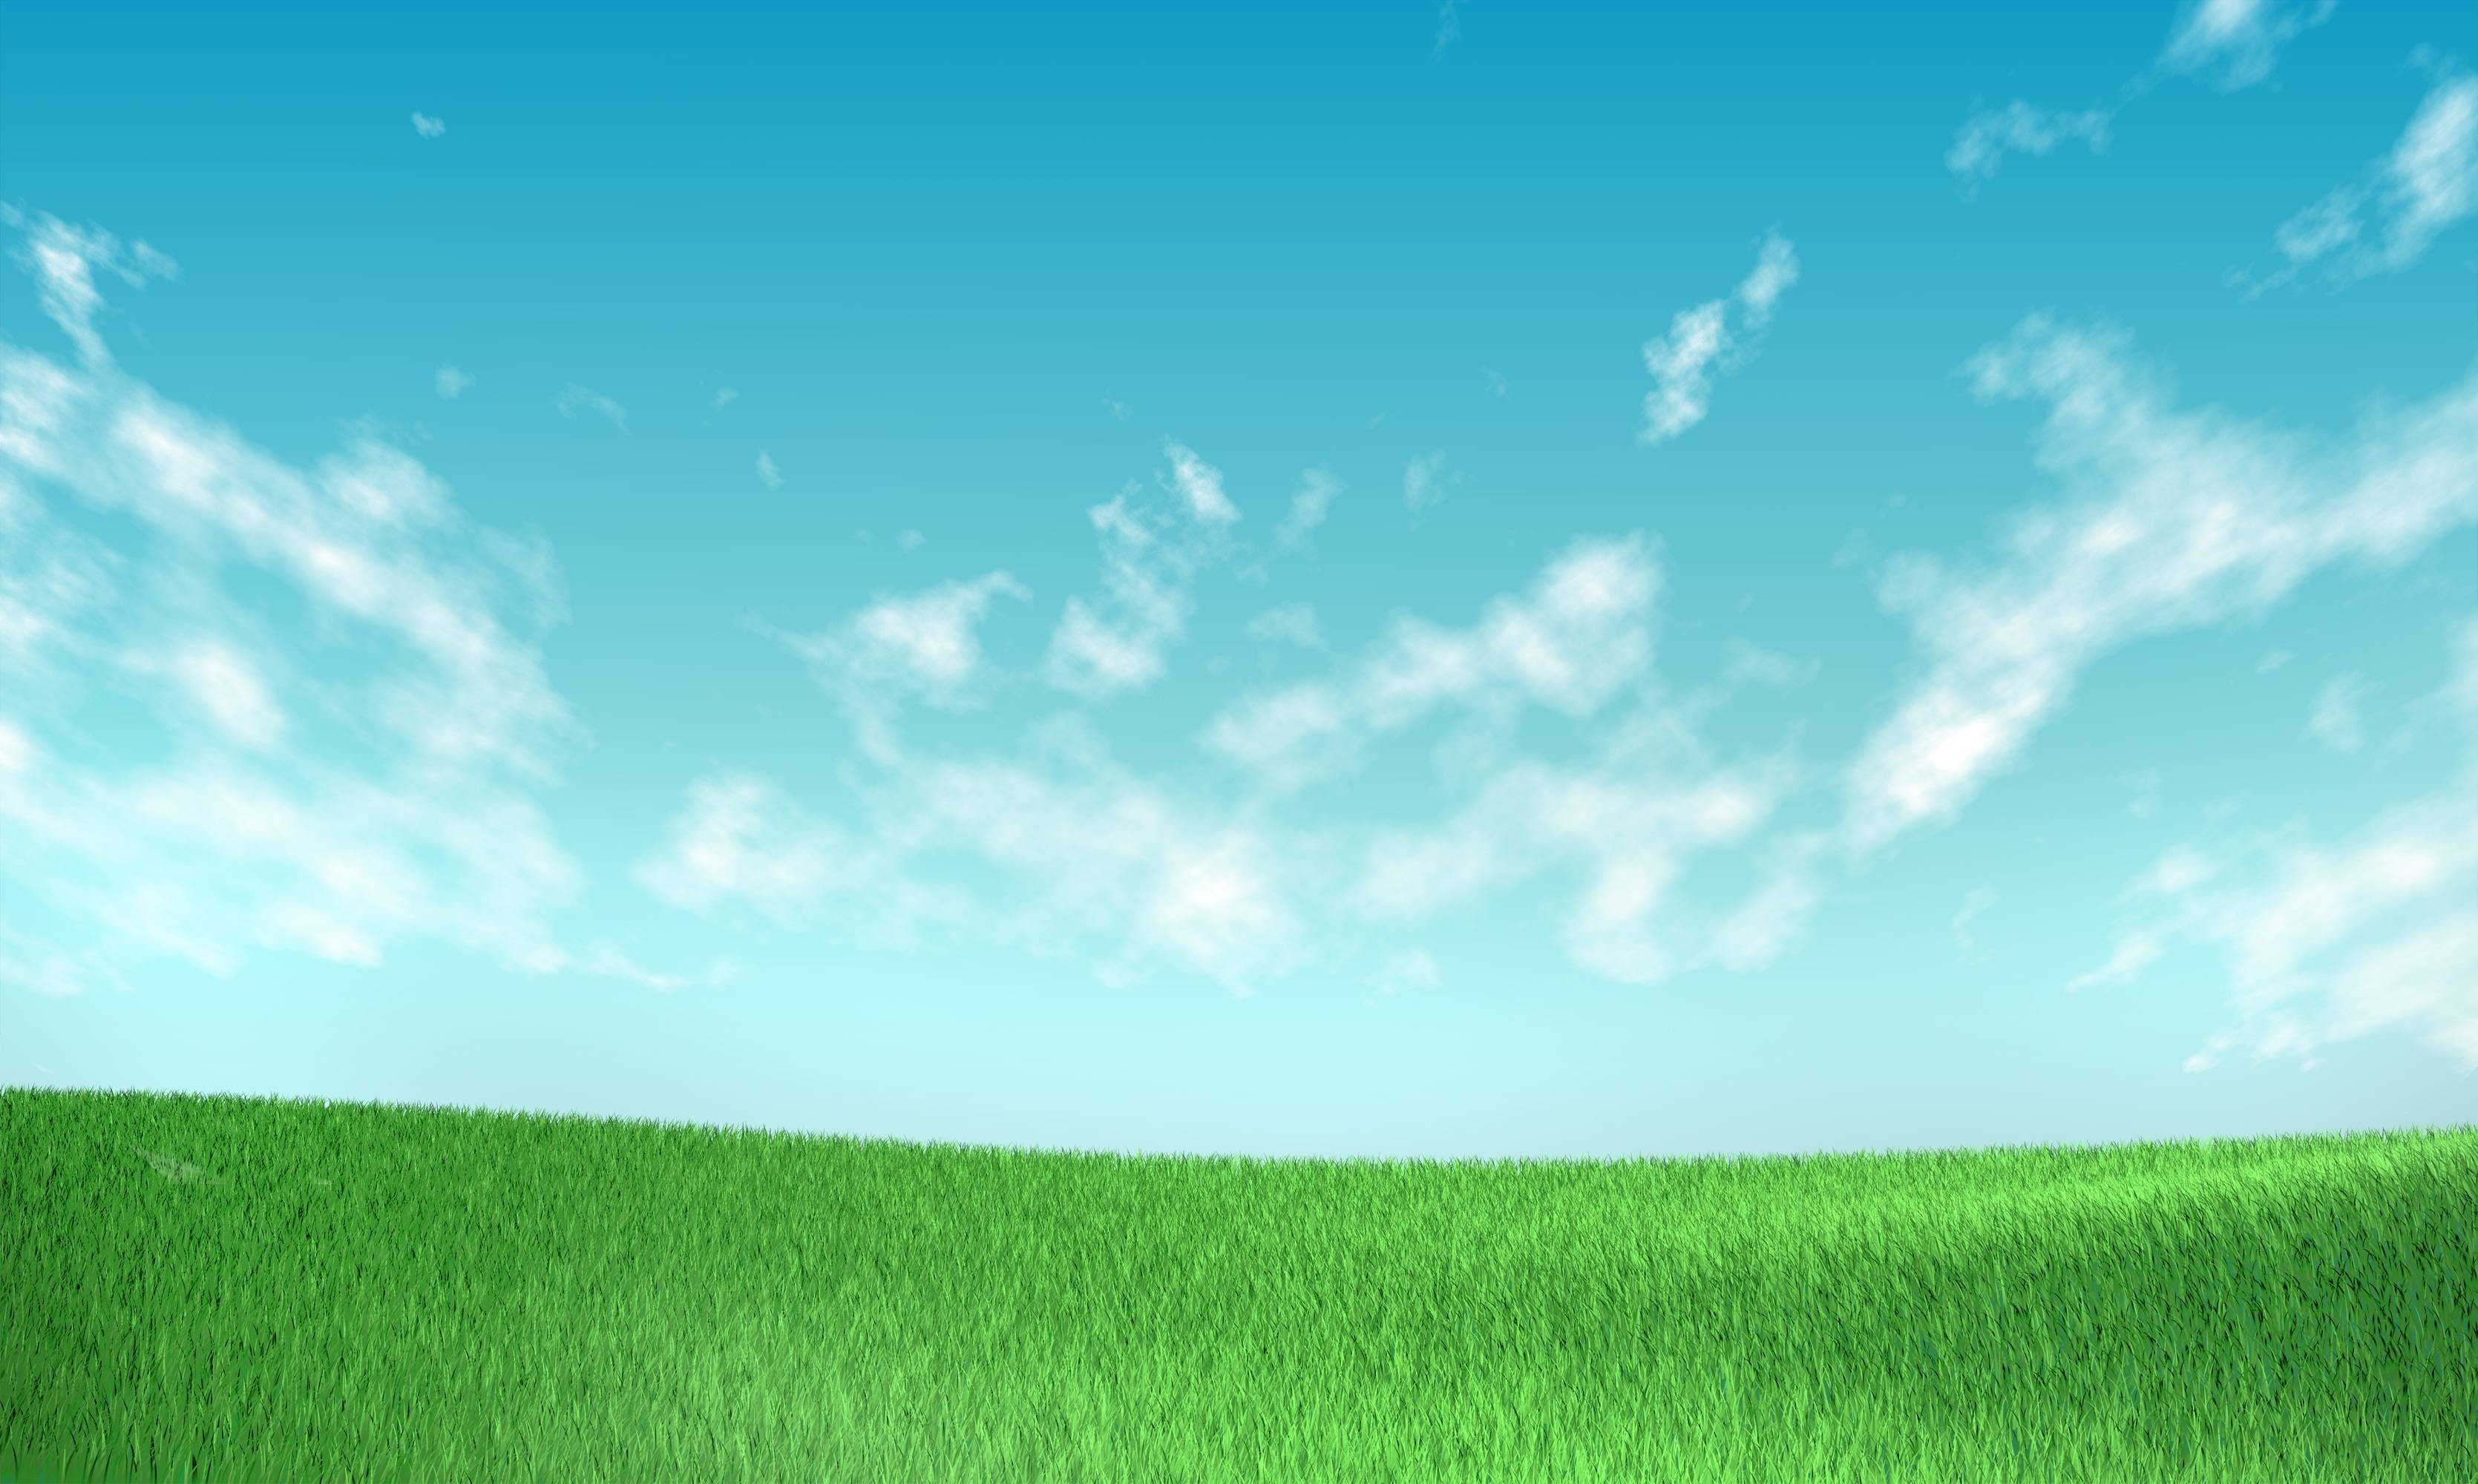 Sky Background Images 45 Pictures